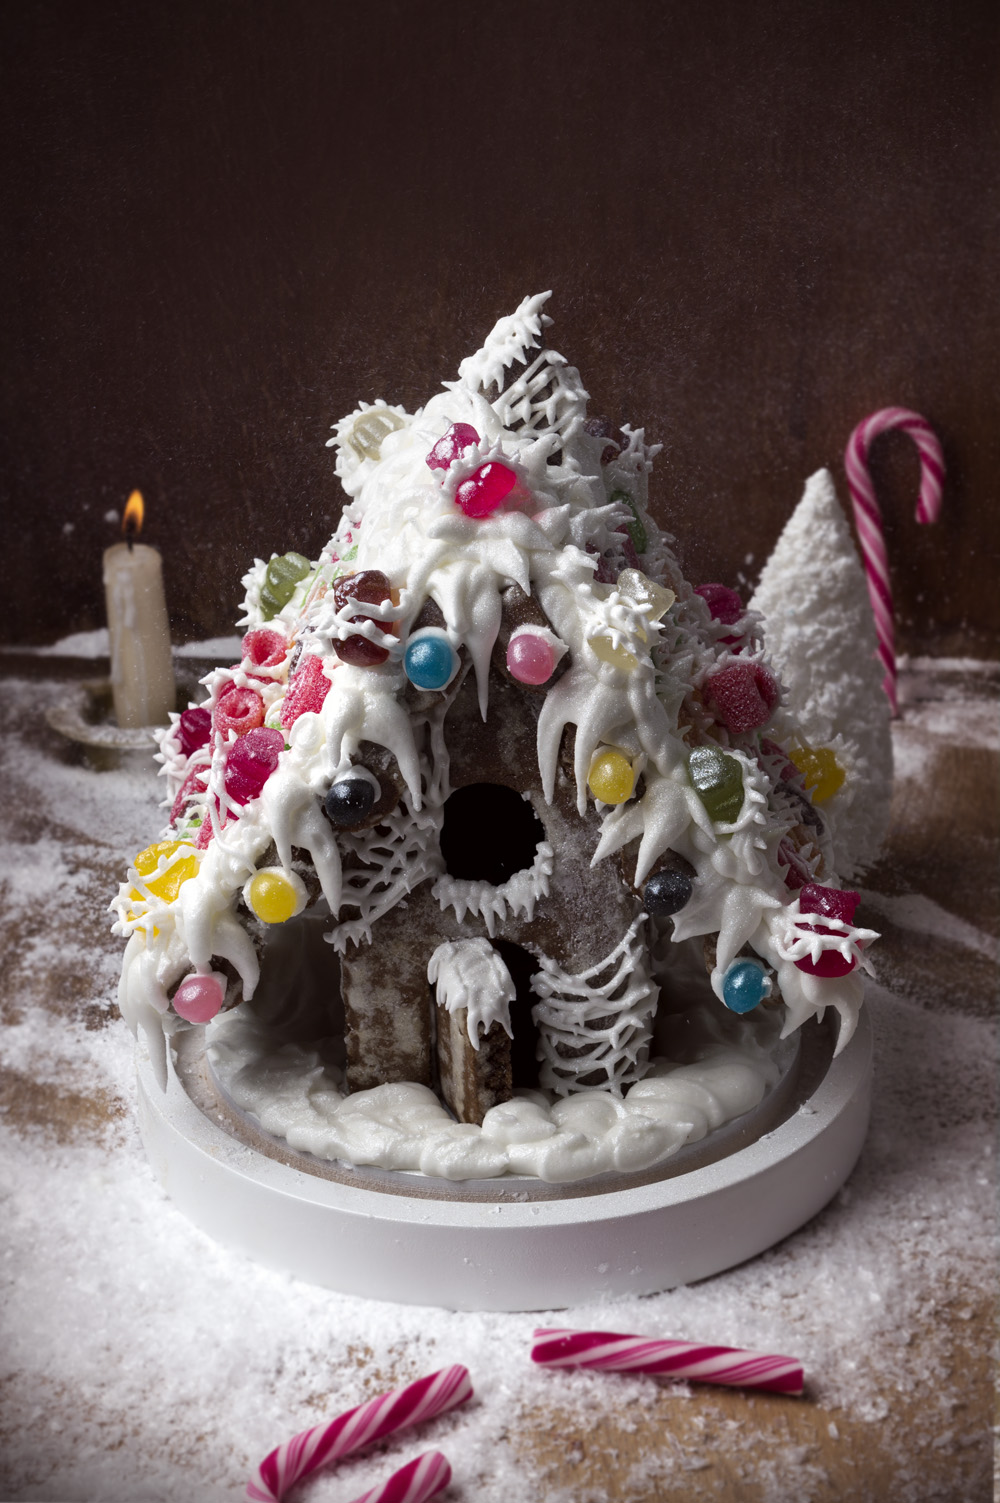 la-maison-de-pain-depices-gingerbread-house-qui-a-vole-les-tartes-studio-de-creation